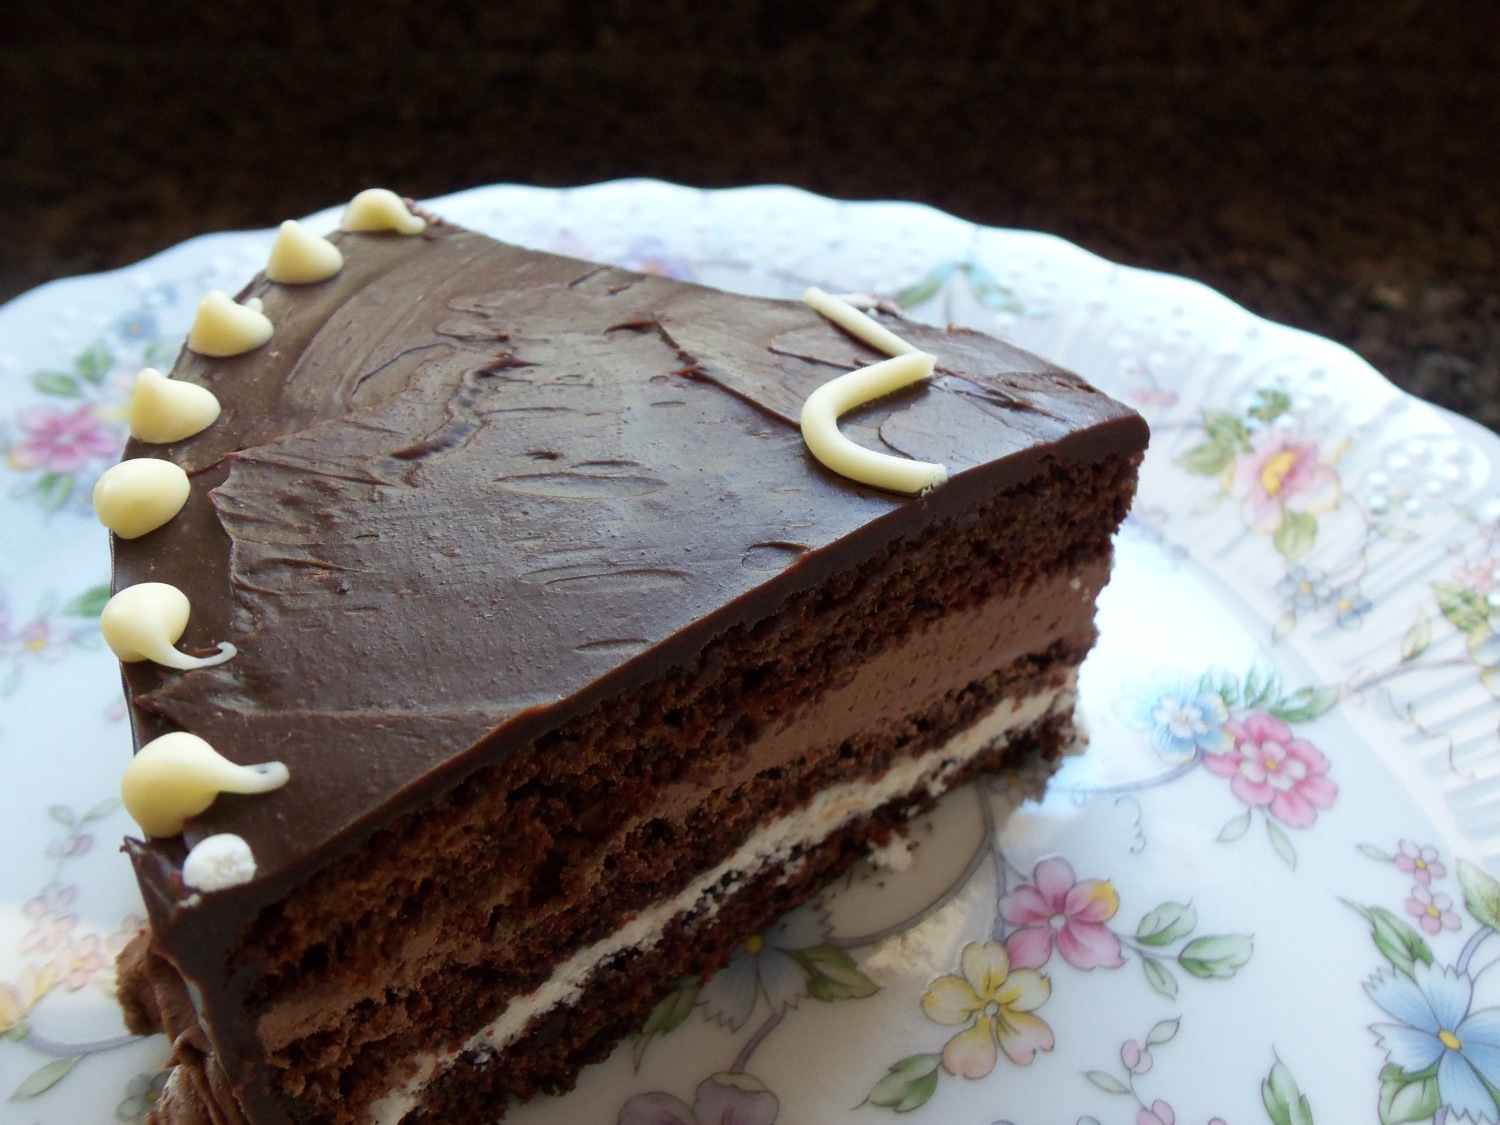 Chocolate Ganache Opera Cream Cake